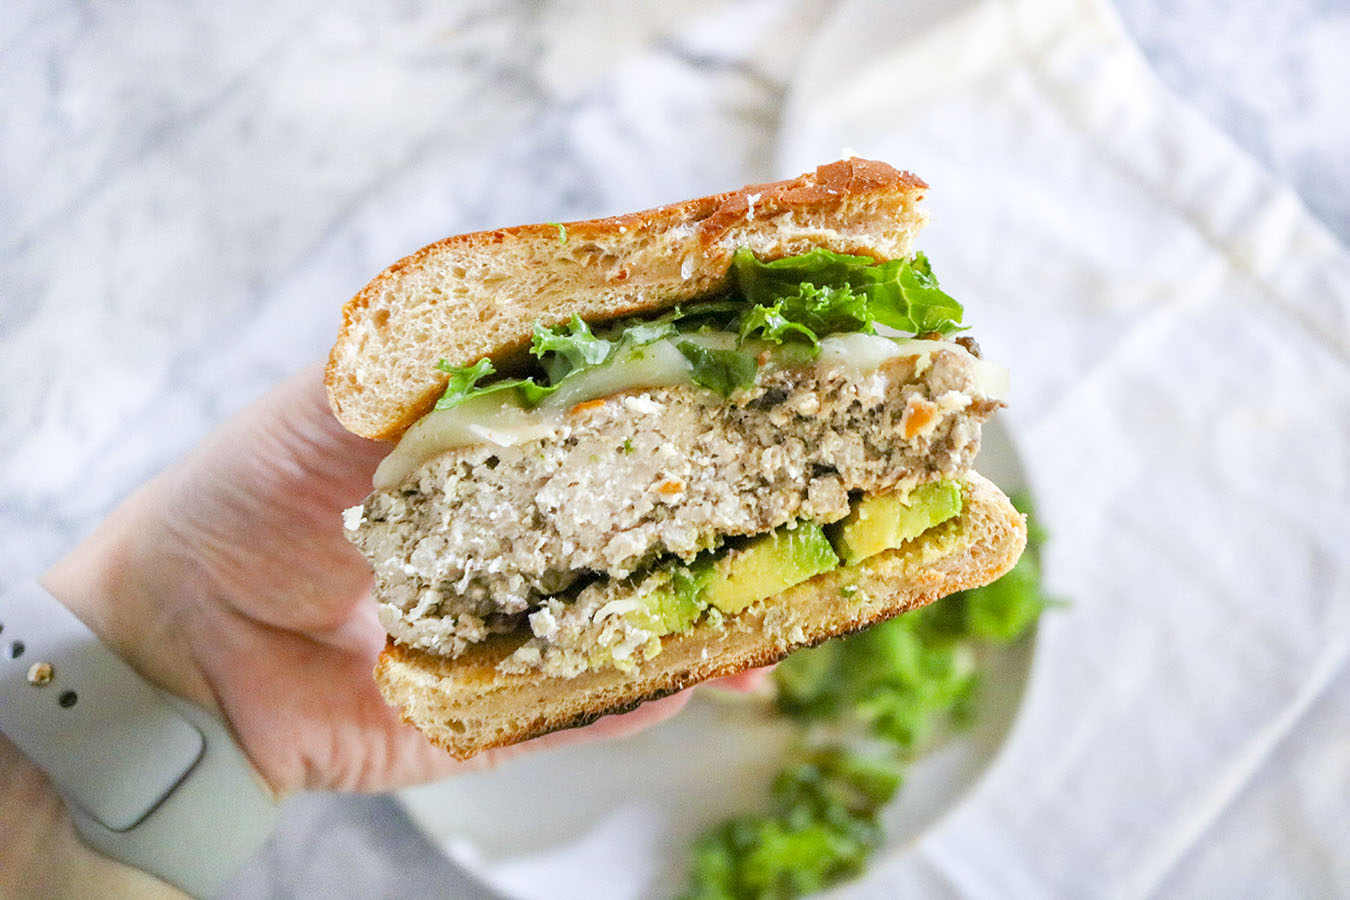 These incredibly EASY Turkey Burgers are deliciously juicy and flavorful. Tasty enough to enjoy plain - yet simple enough to load with unique toppings! | NOMaste Kitchen